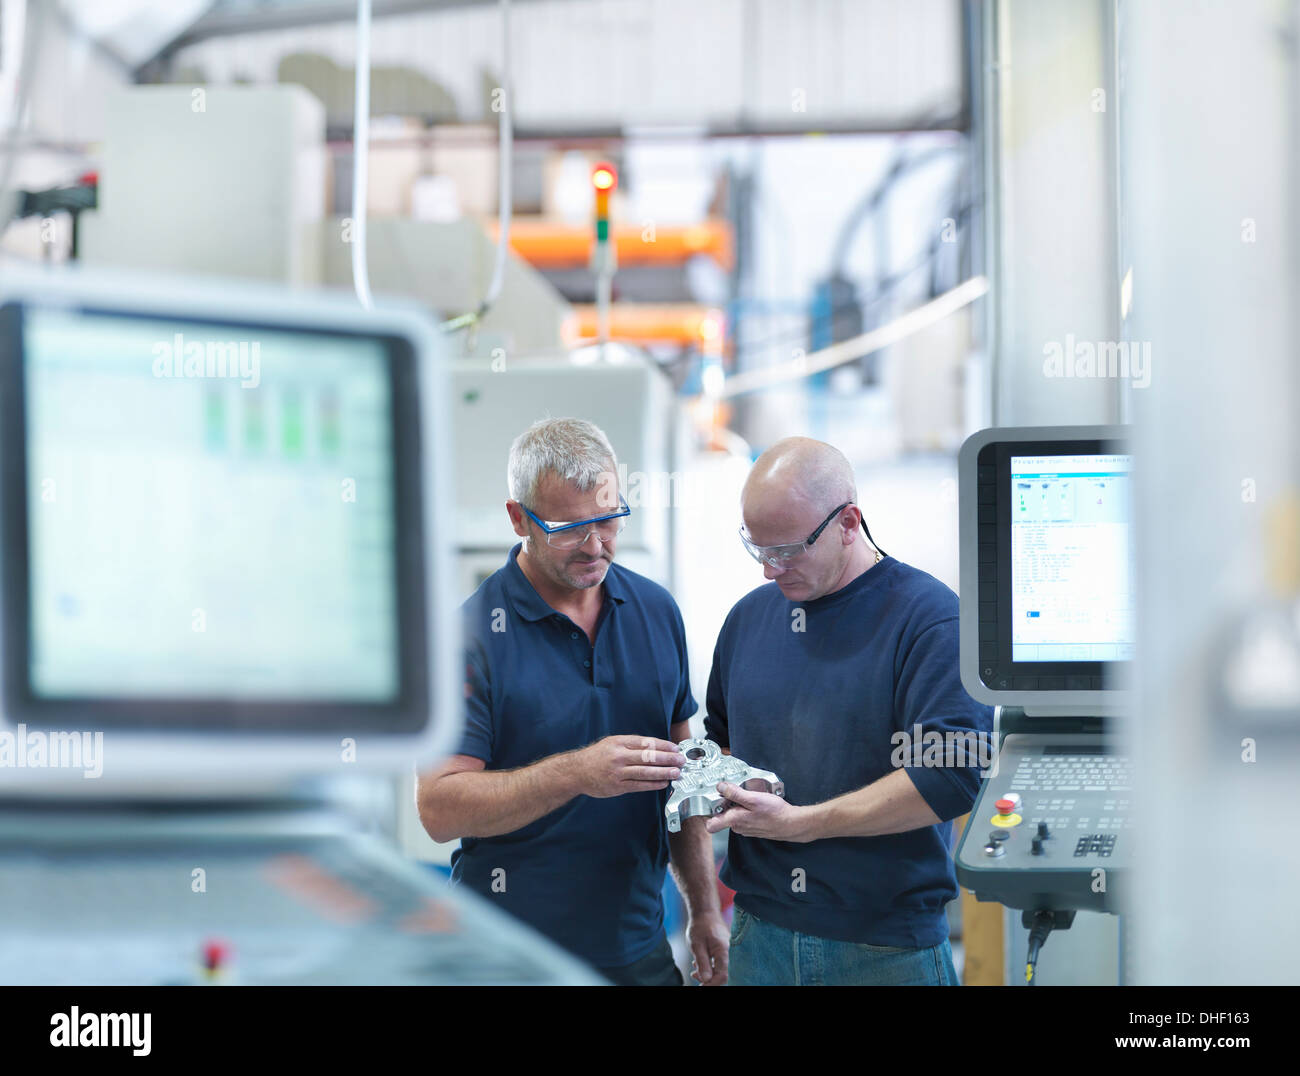 Engineers inspecting complex metal component in factory - Stock Image